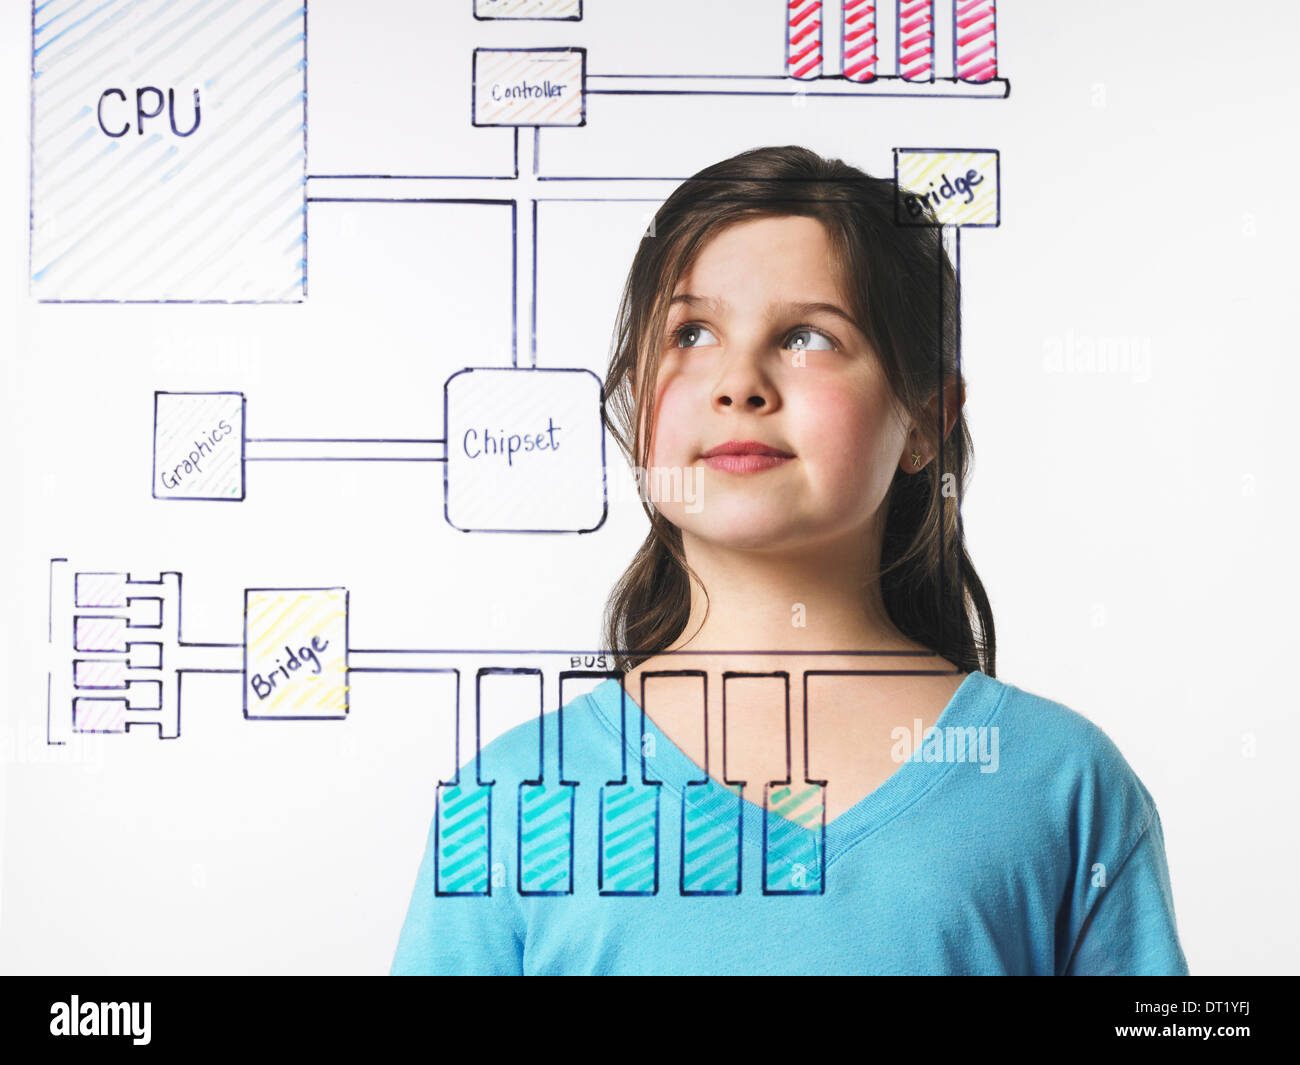 A young girl looking at a drawing of a computer motherboard circuit drawn on a see through clear surface - Stock Image